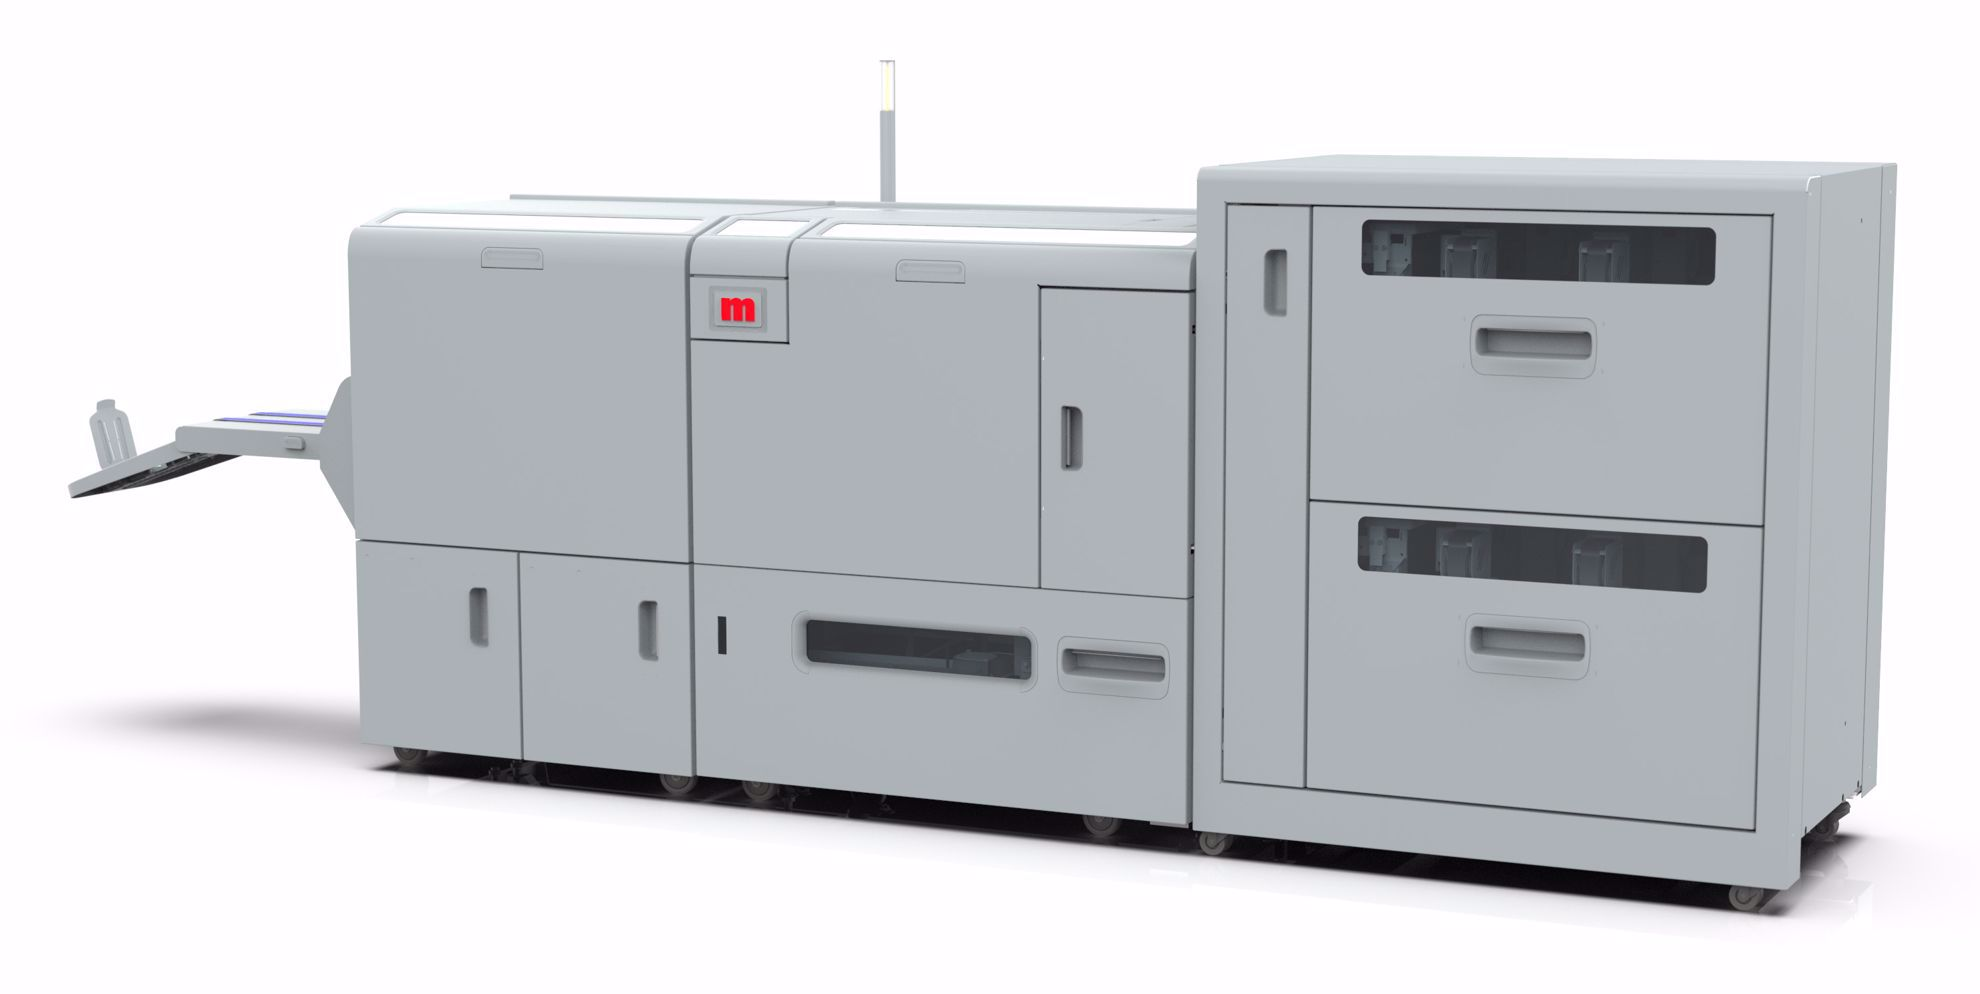 Picture of Morgana BM5035 and BM5050 Booklet Maker